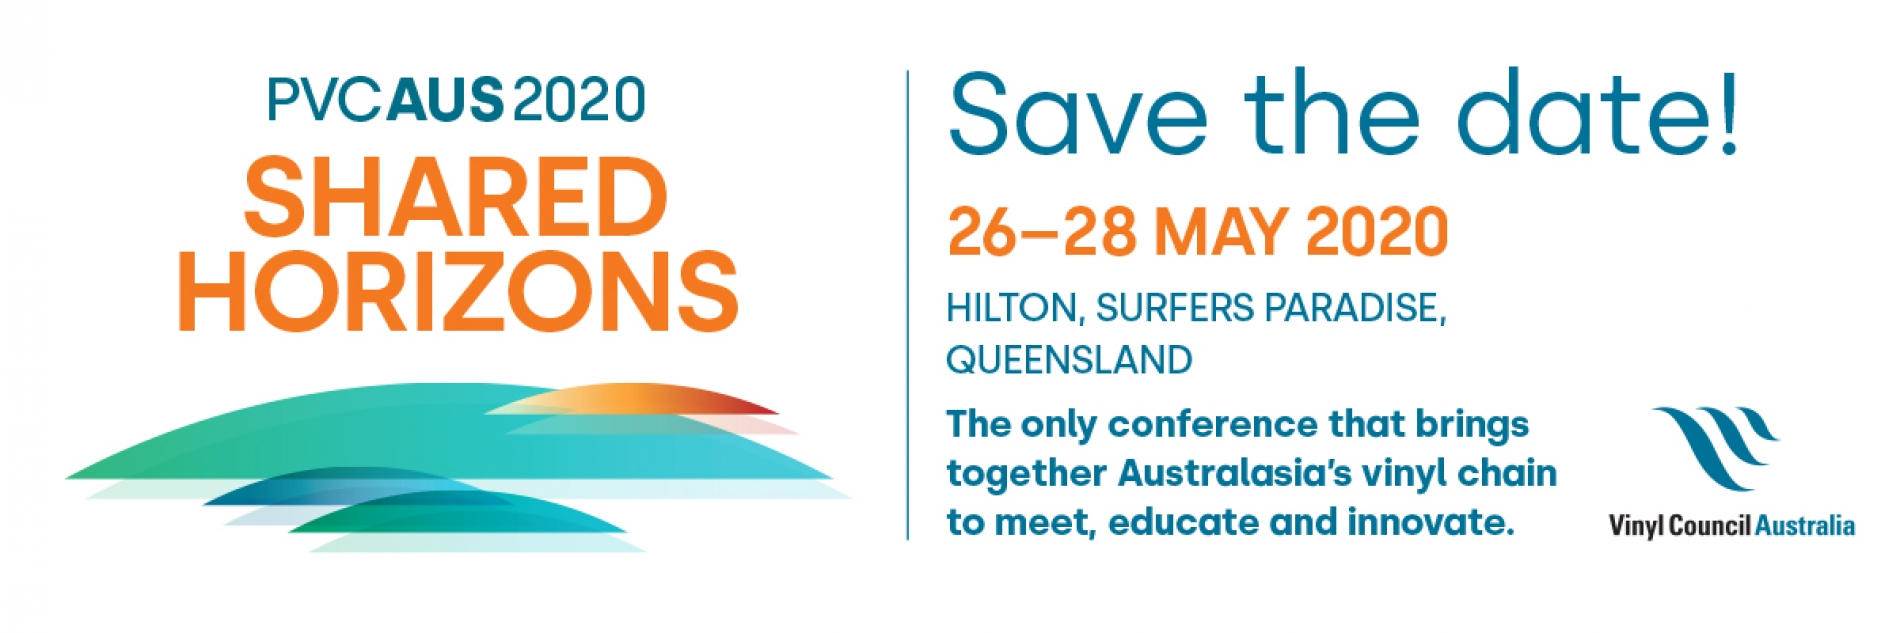 PVC AUS 2021: Call for Papers Shared Horizons